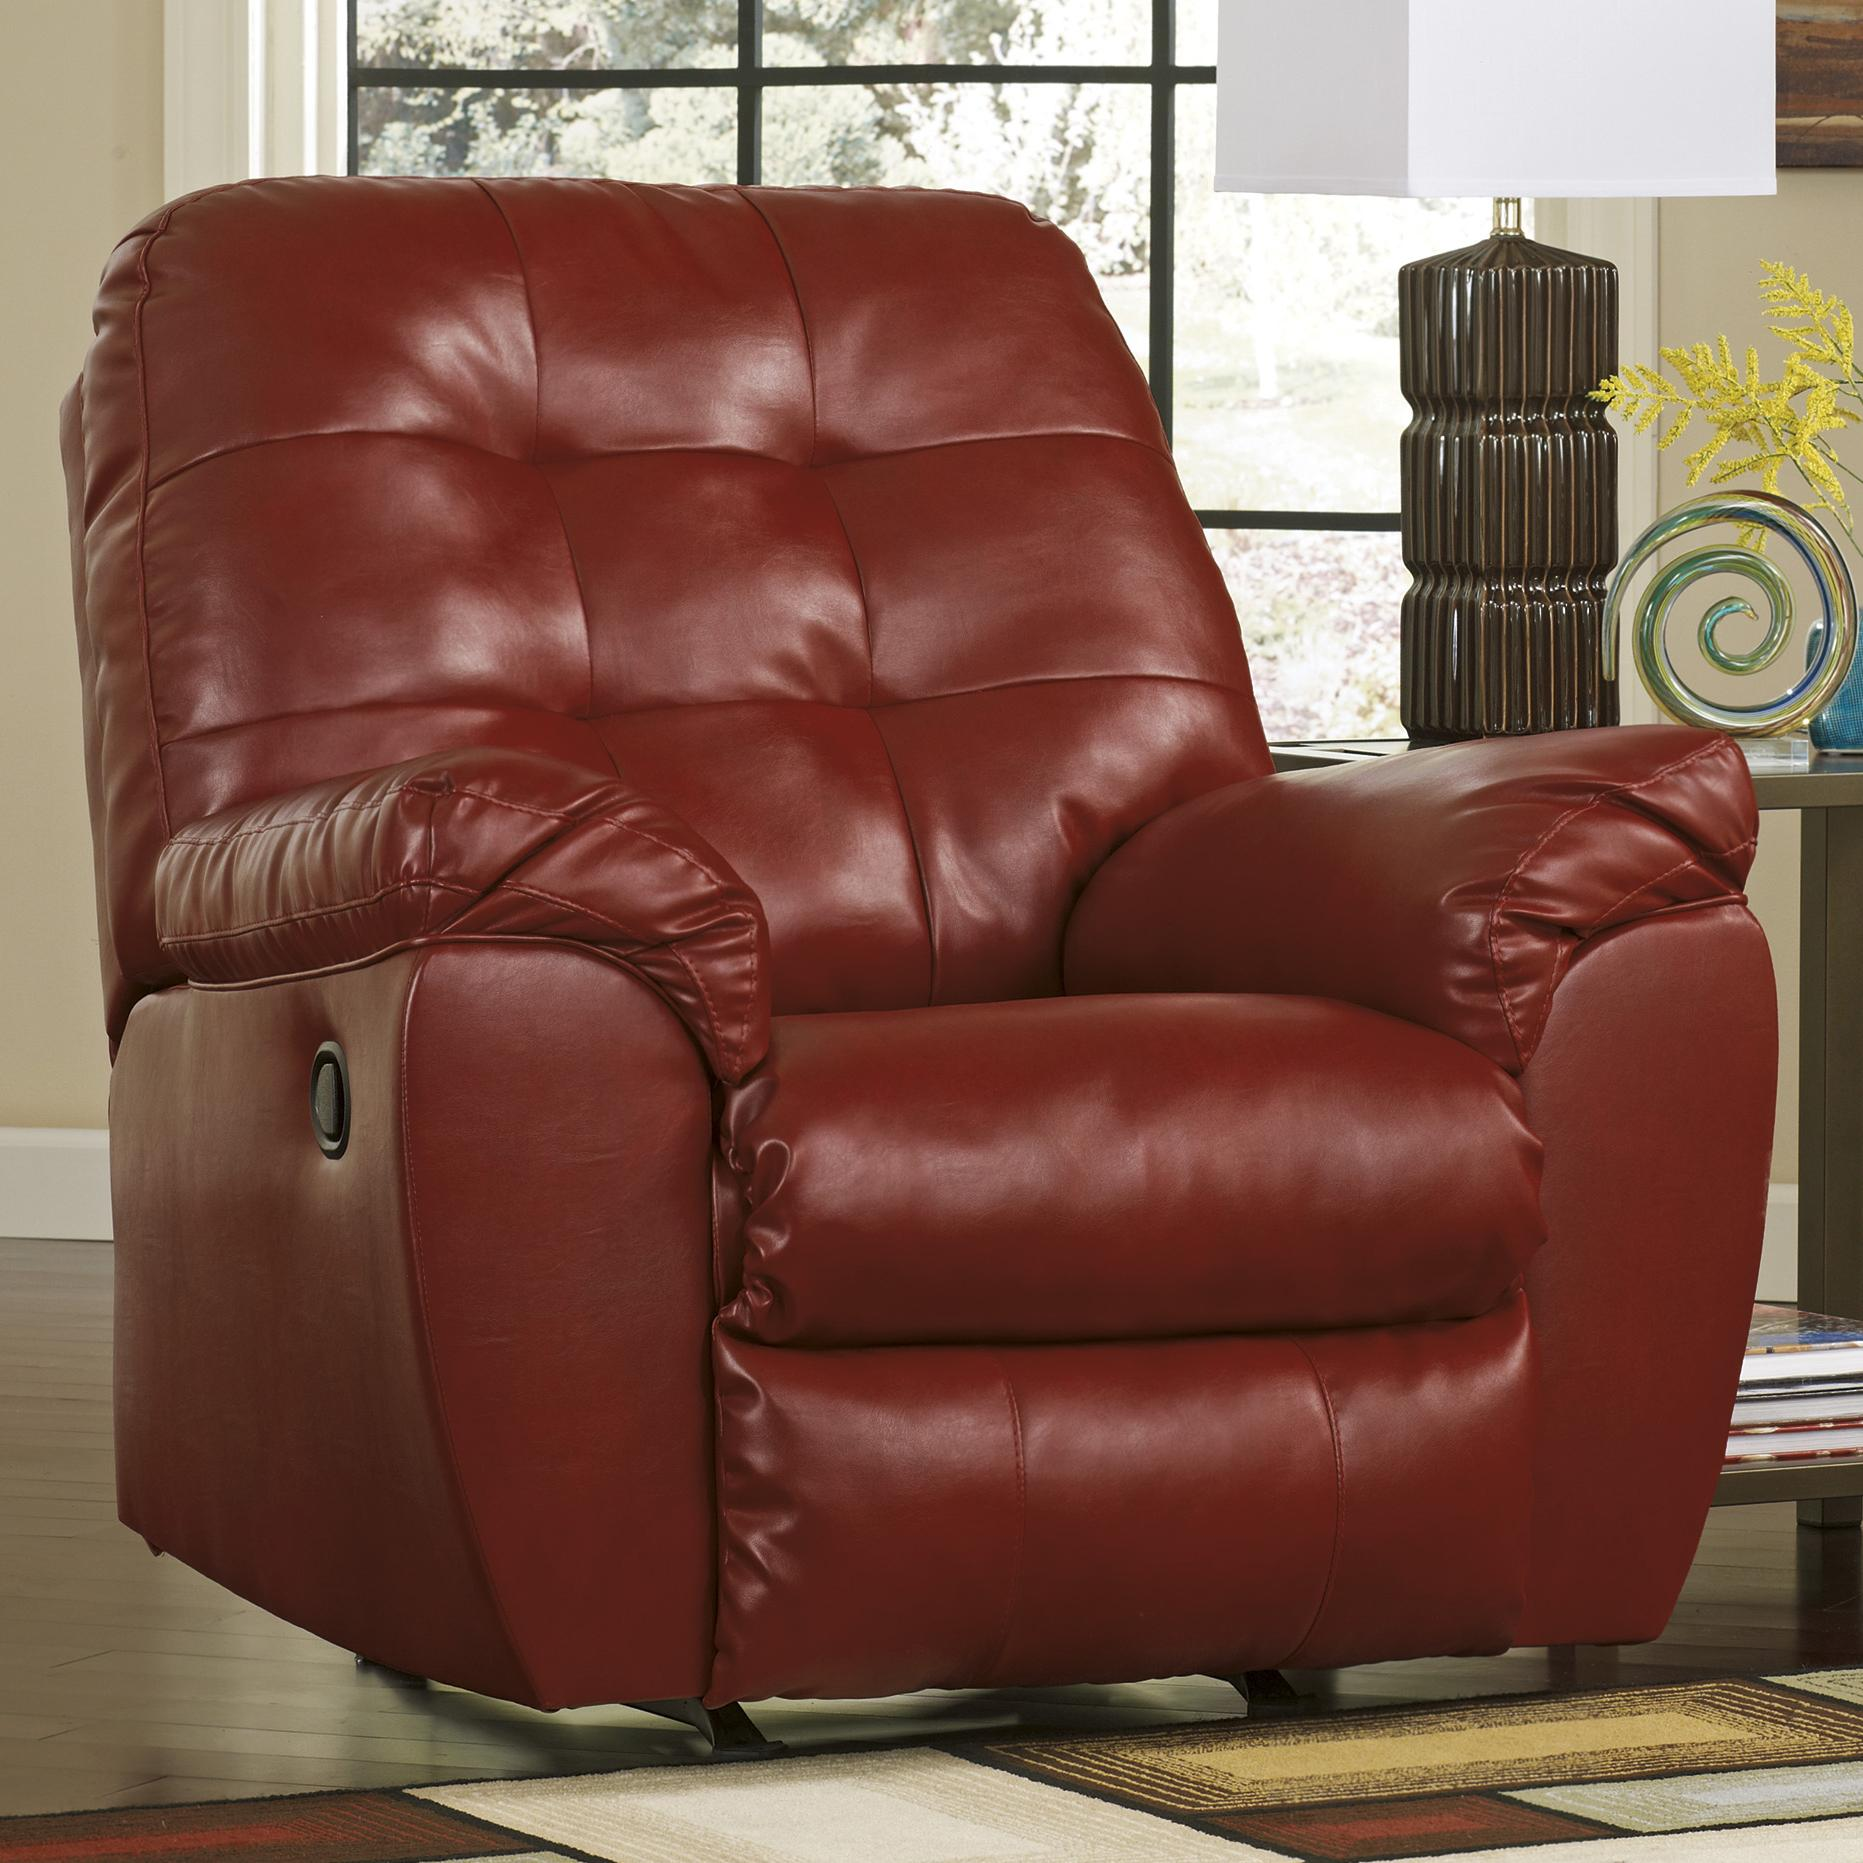 Recliner Pillow Alliston Durablend Salsa Rocker Recliner W Pillow Arms By Signature Design By Ashley At Household Furniture